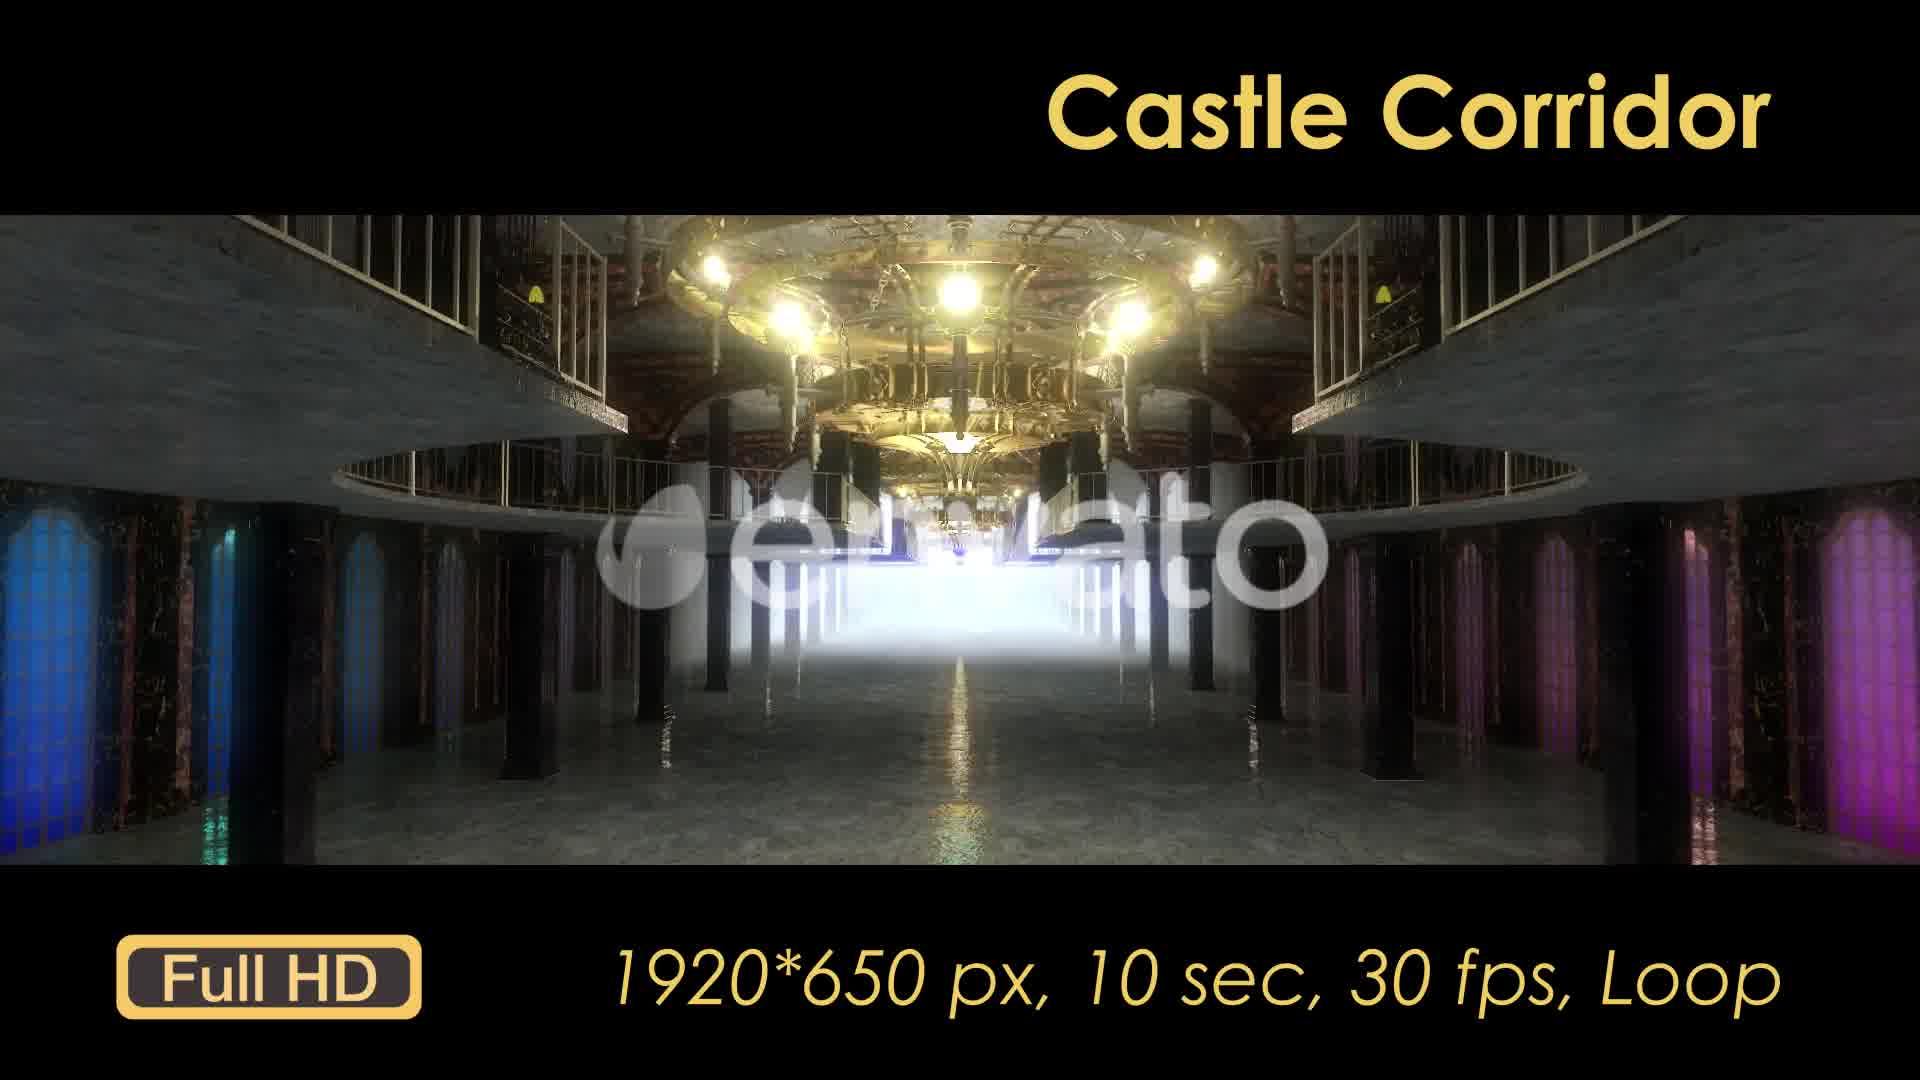 Castle Interior Videohive 22120312 Motion Graphics Image 10